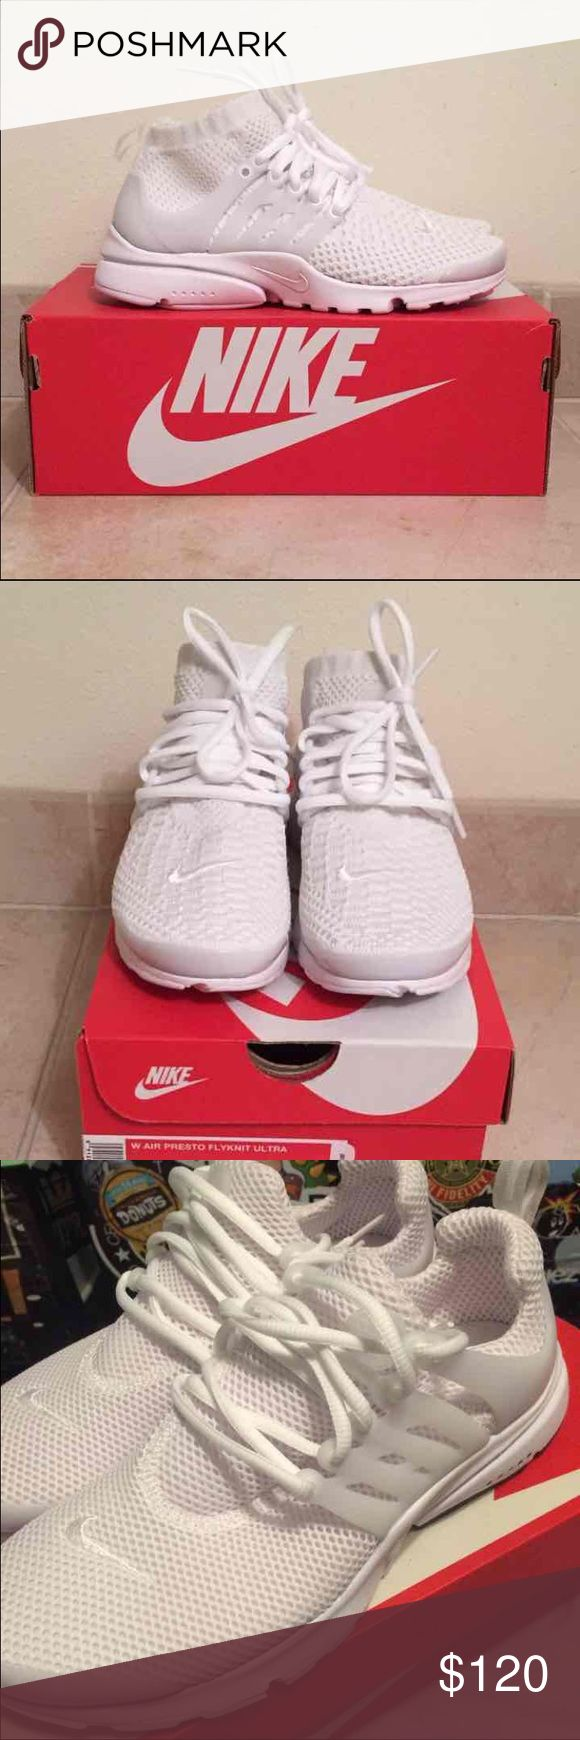 Nike air presto size 6.5 Brand new in box • women's size 6.5 • white Nike air presto shoes Nike Shoes Athletic Shoes